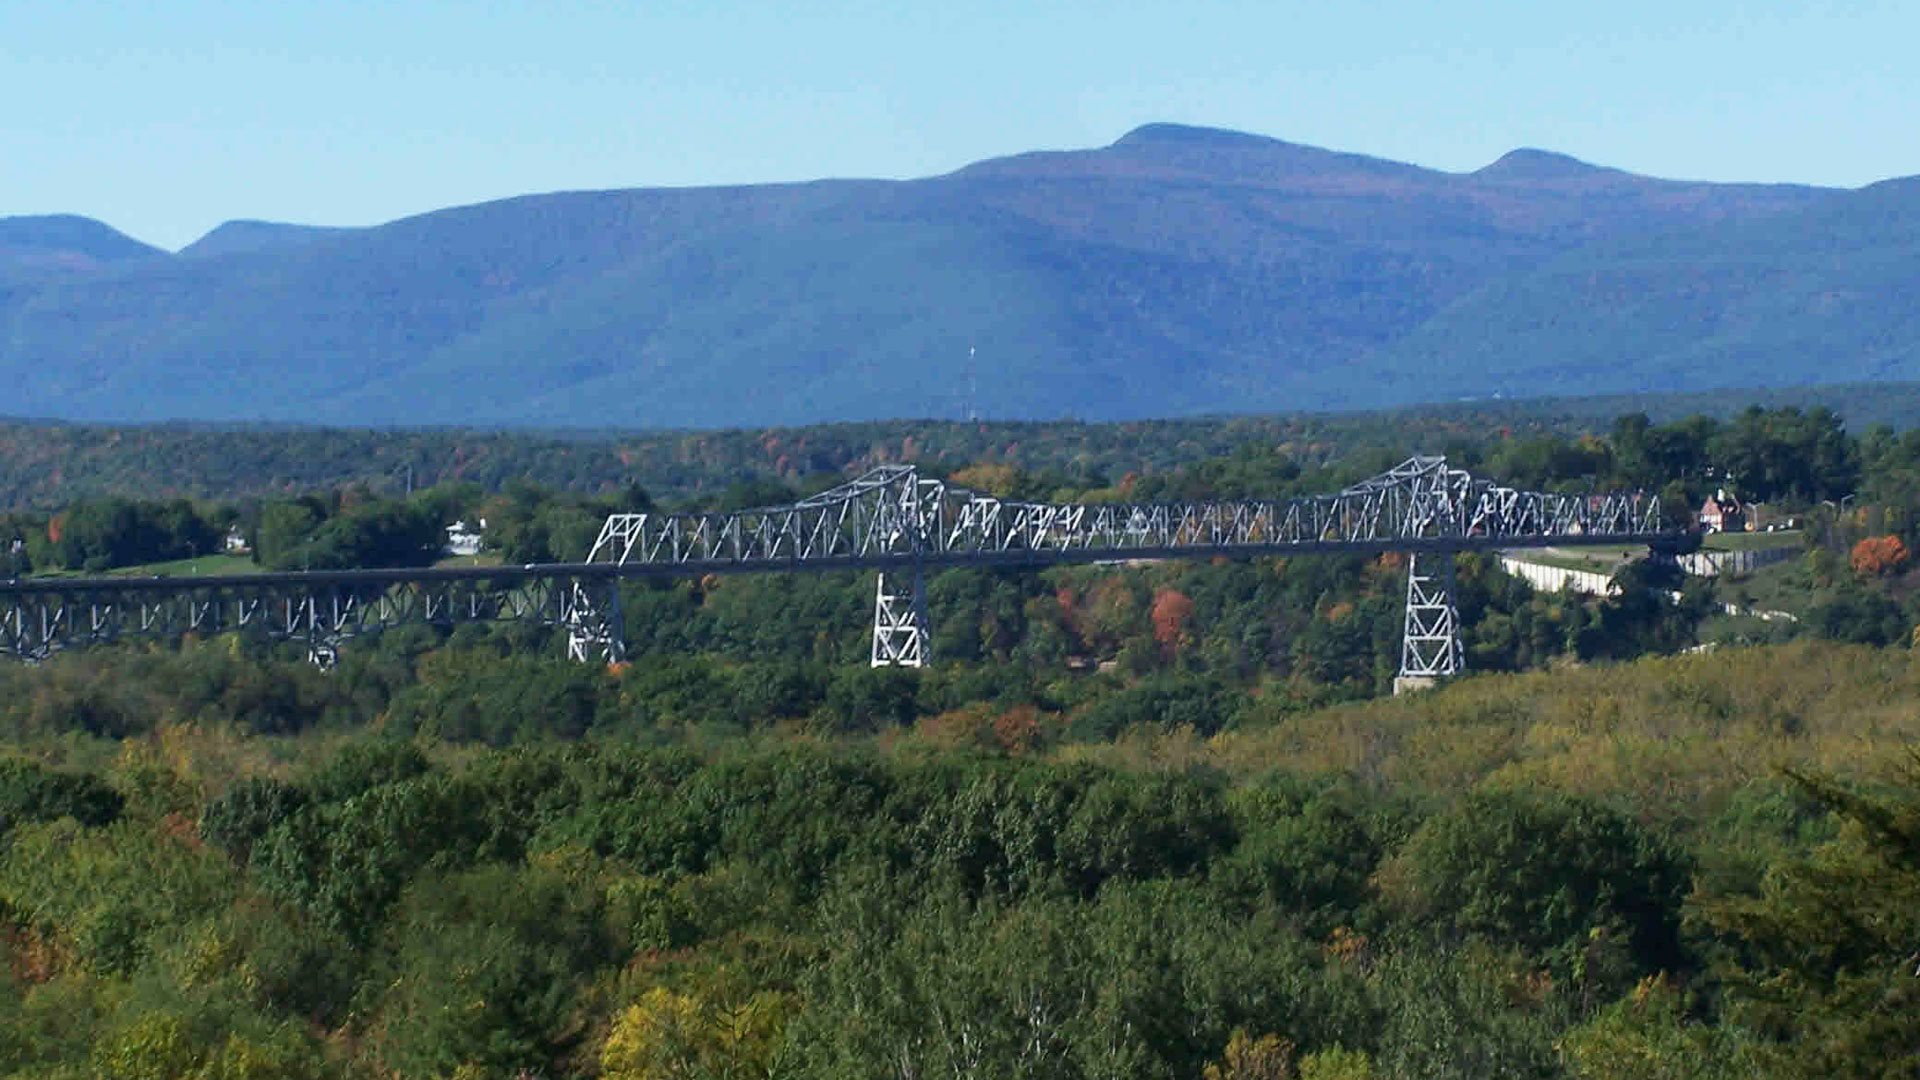 Rip van Winkle Bridge with Catskill mountains in the background.